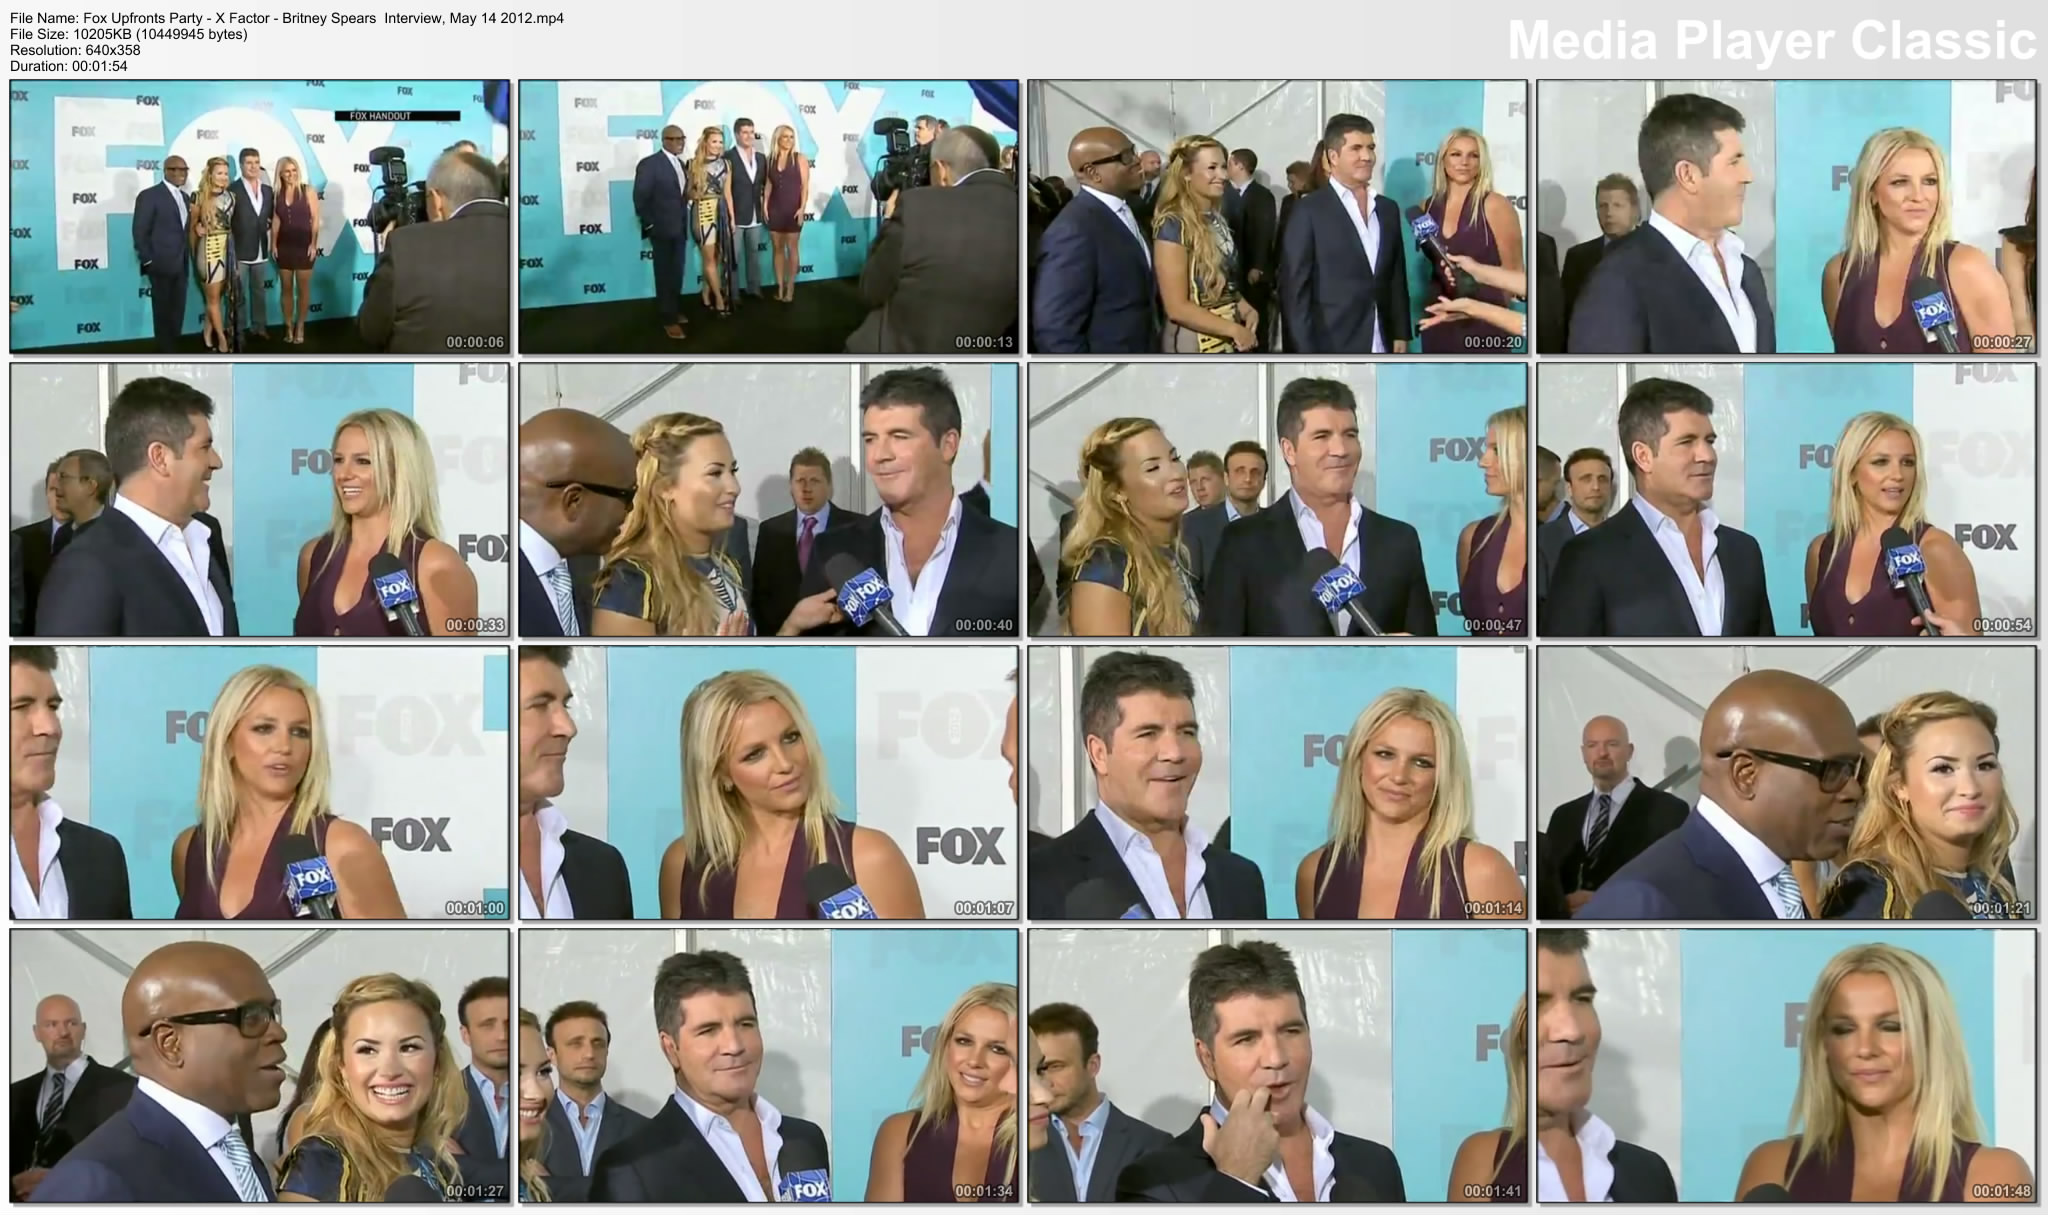 779133432_FoxUpfrontsParty_XFactor_BritneySpearsInterviewMay142012.mp4_thumbs_2012.05.23_20.32.18_122_408lo.jpg